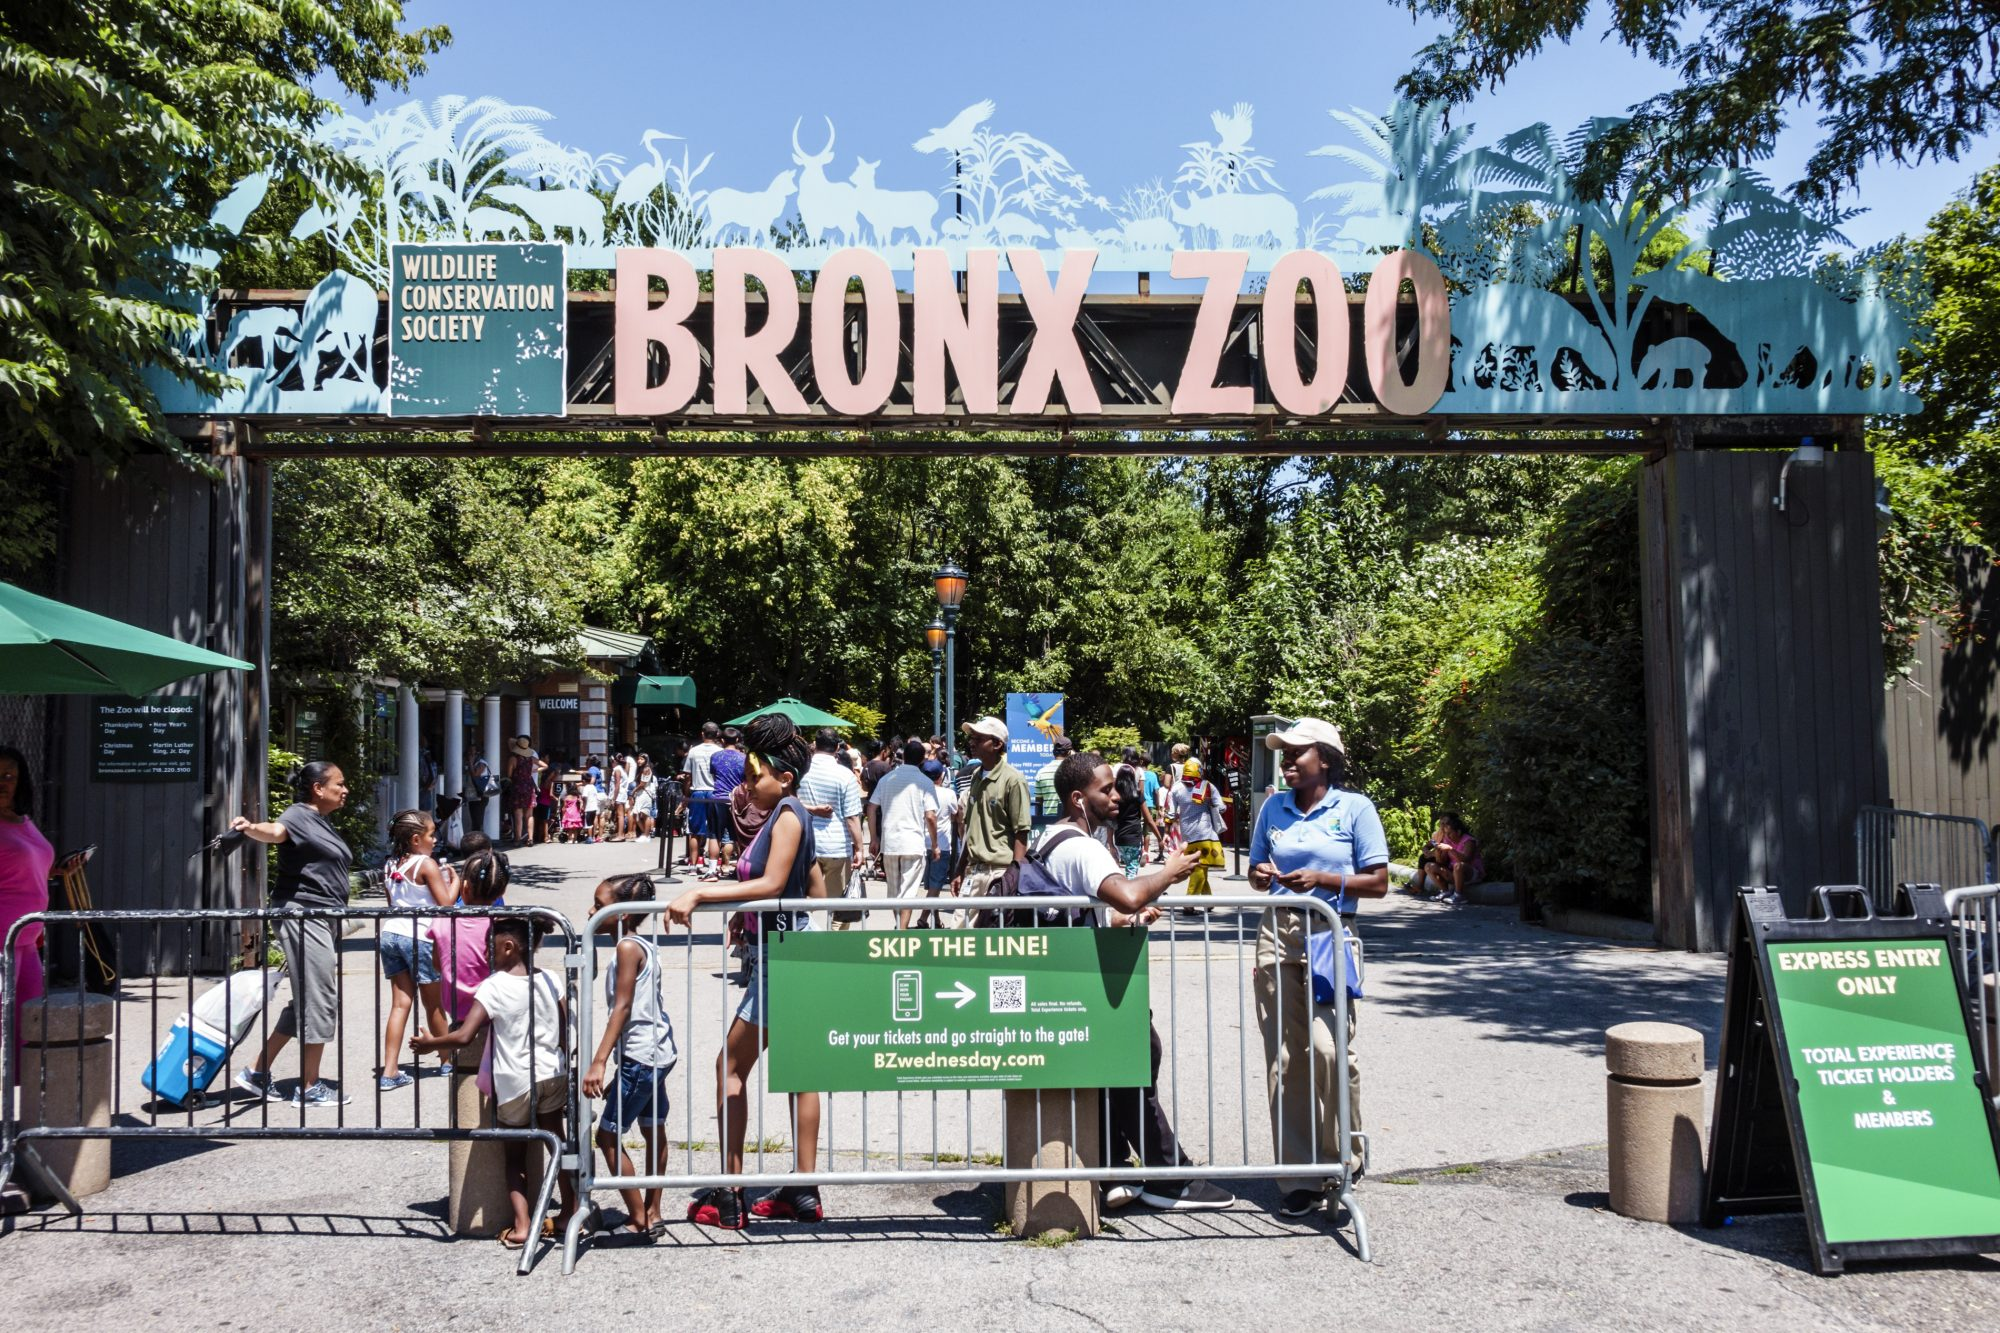 Virtual summer camps - 2020 online virtual summer camp ideas (Bronx Zoo)